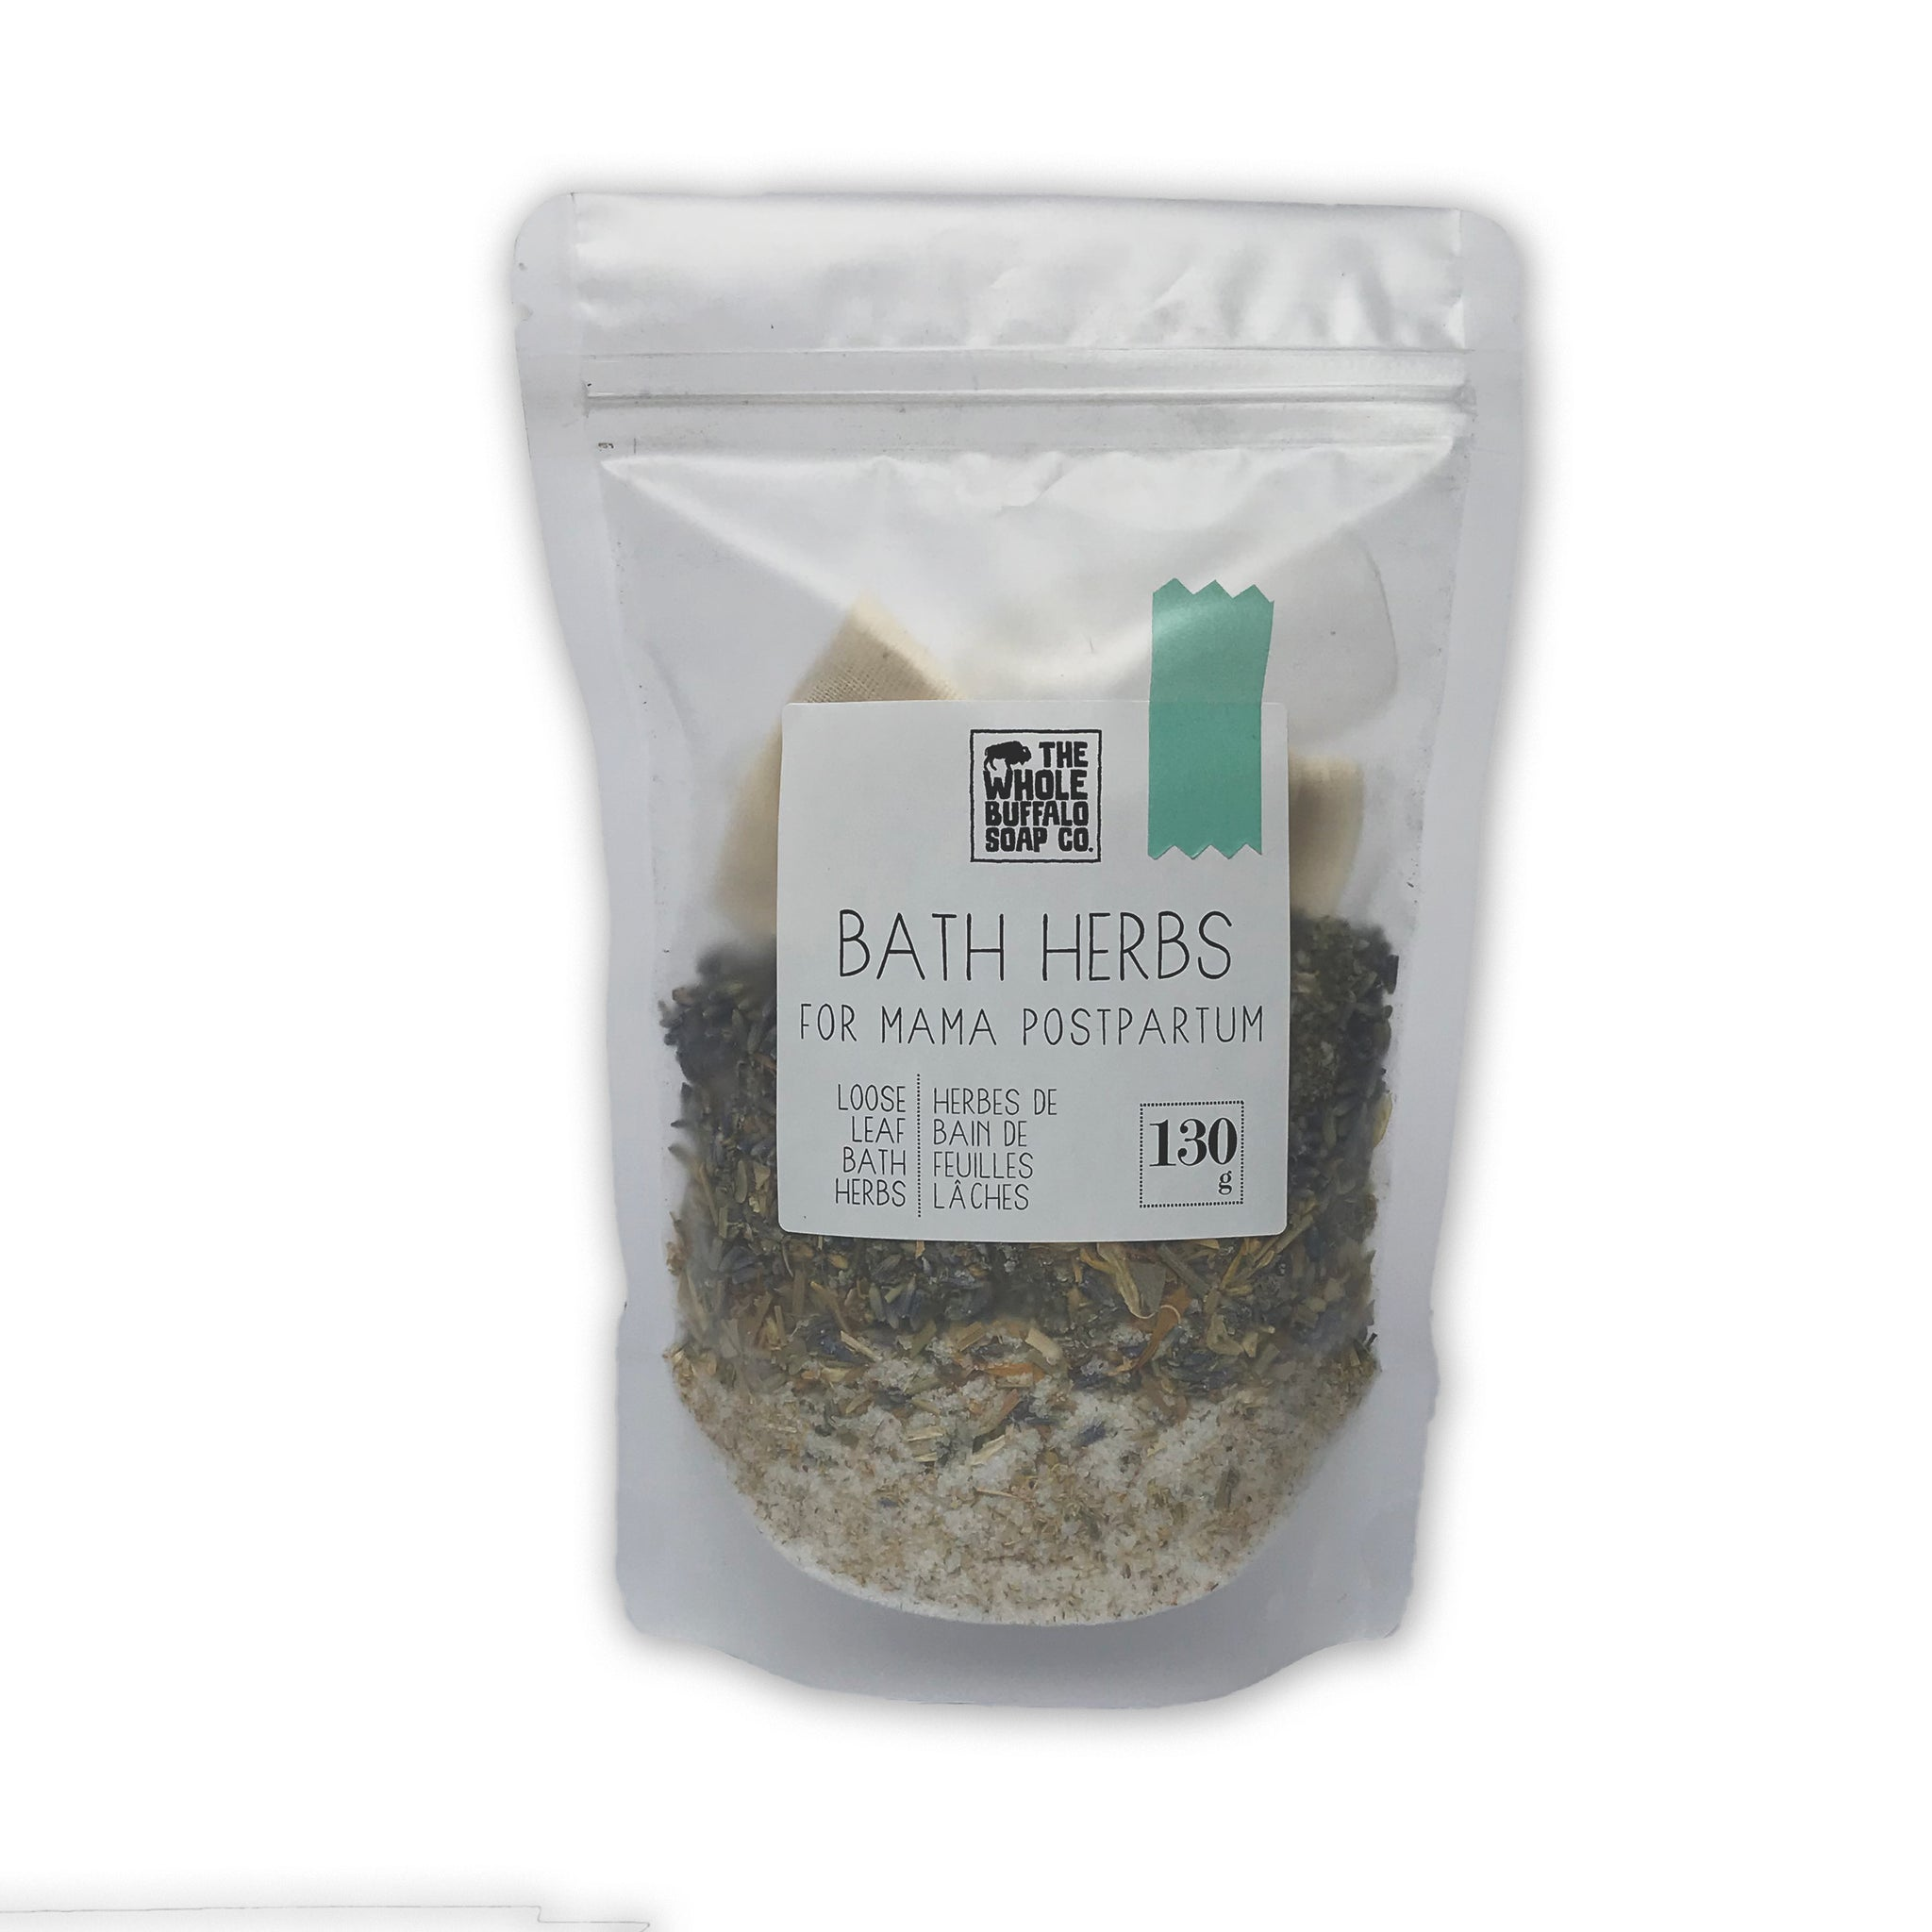 Bath Herbs for Mama Postpartum